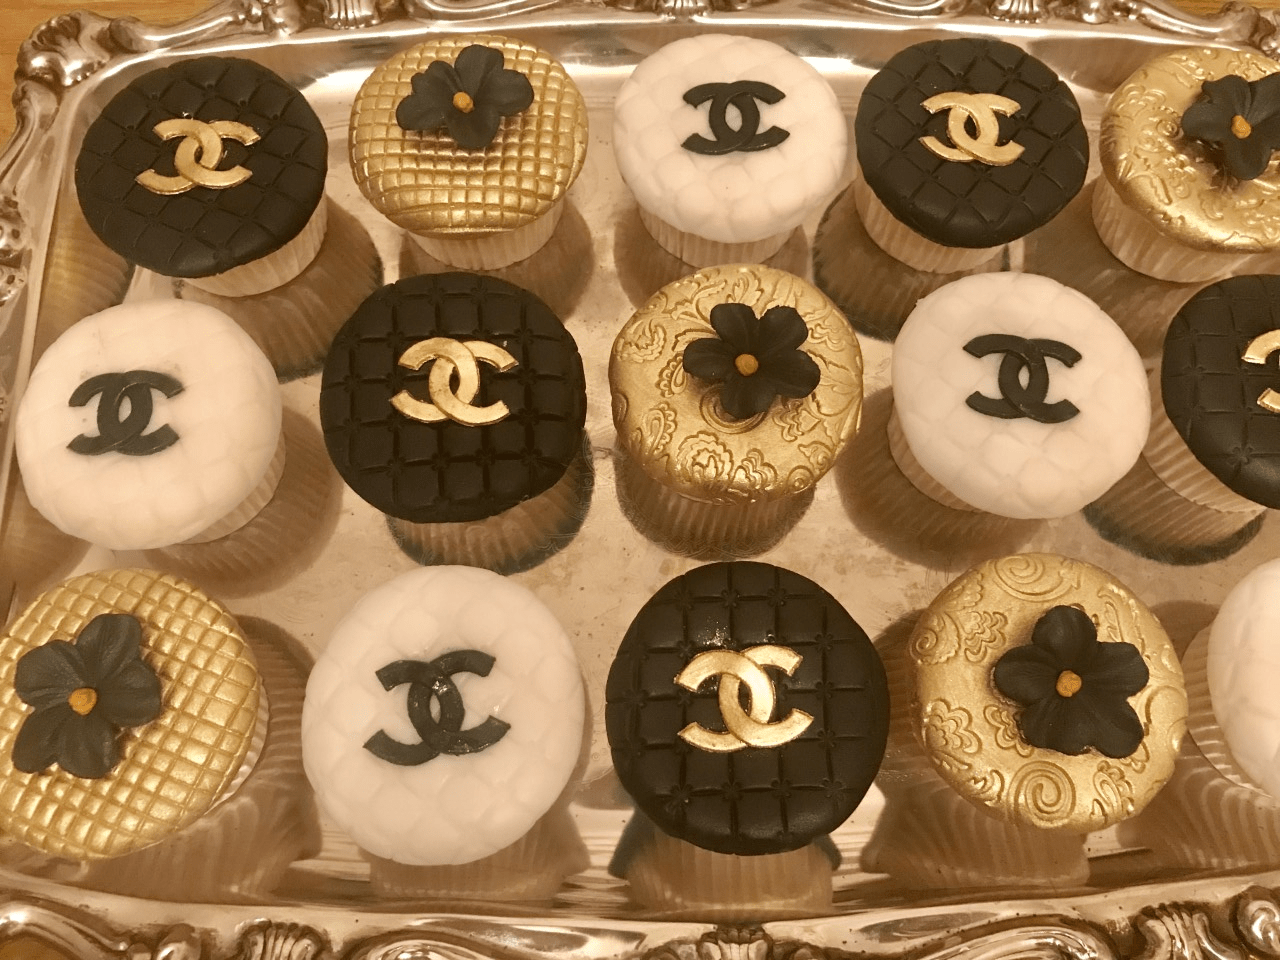 Terrific Chanel Cup Cakes Anns Designer Cakes Funny Birthday Cards Online Fluifree Goldxyz